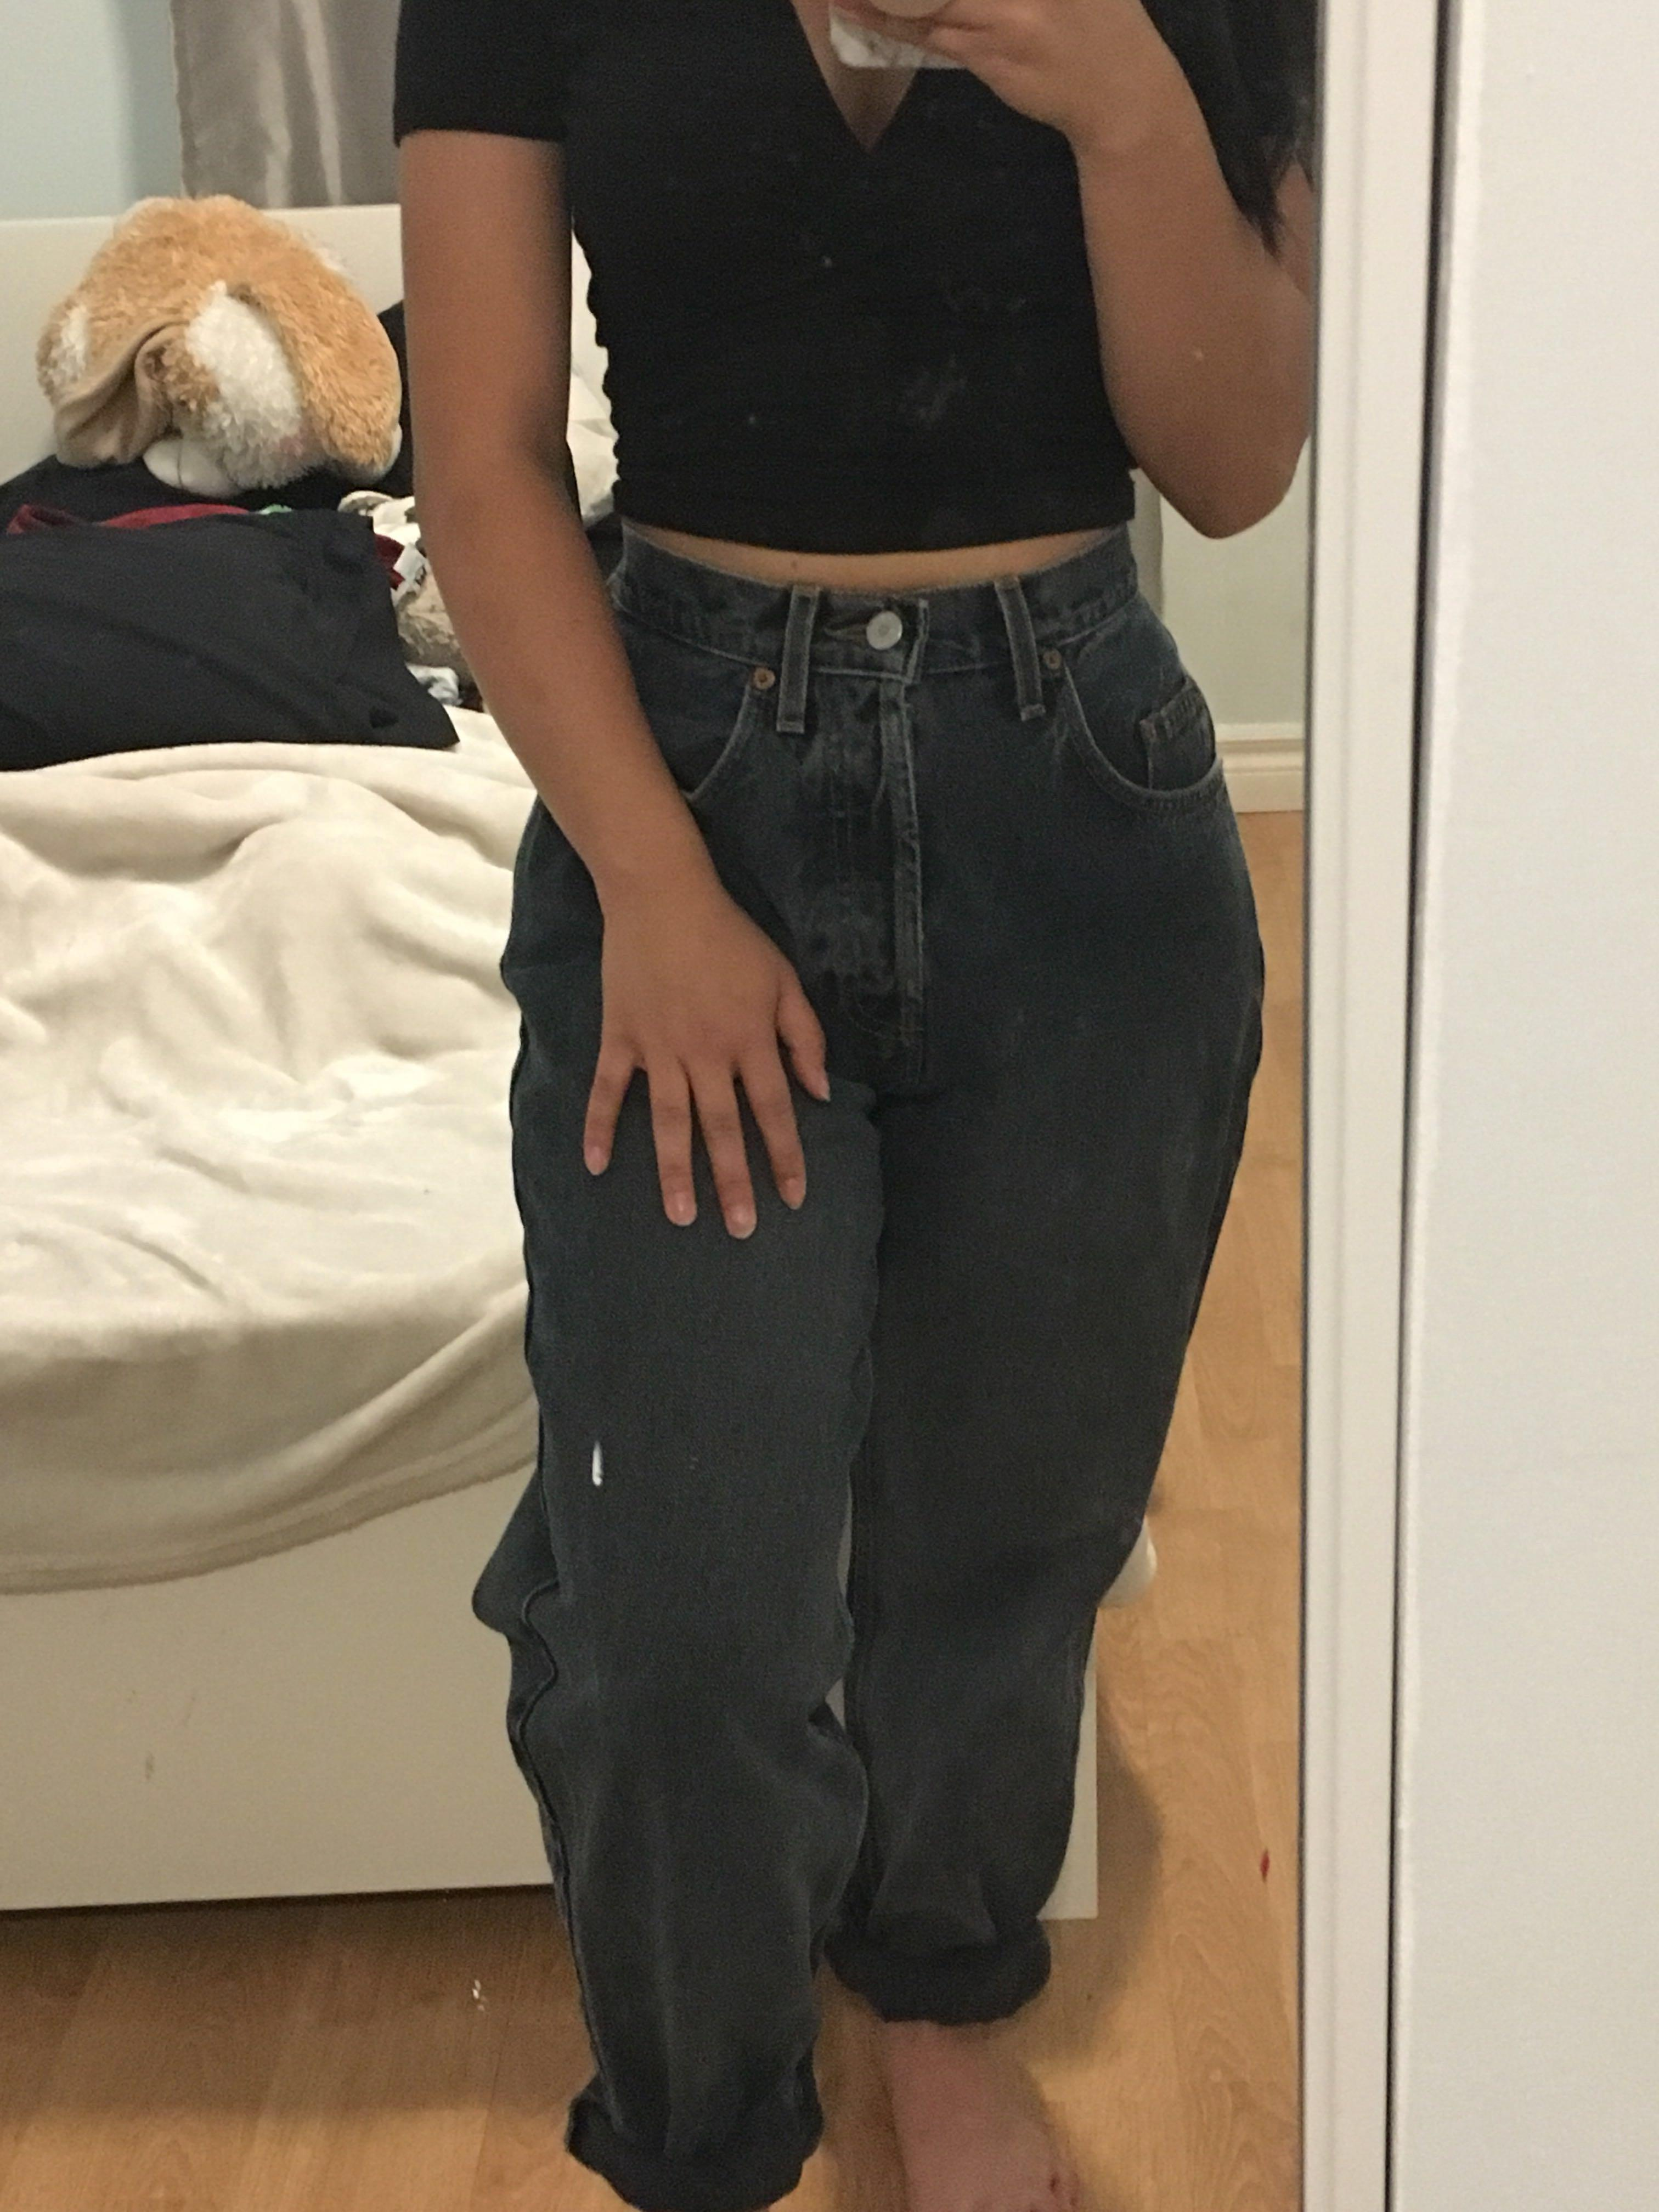 Vintage GUESS high waisted jeans in black with grey undertones